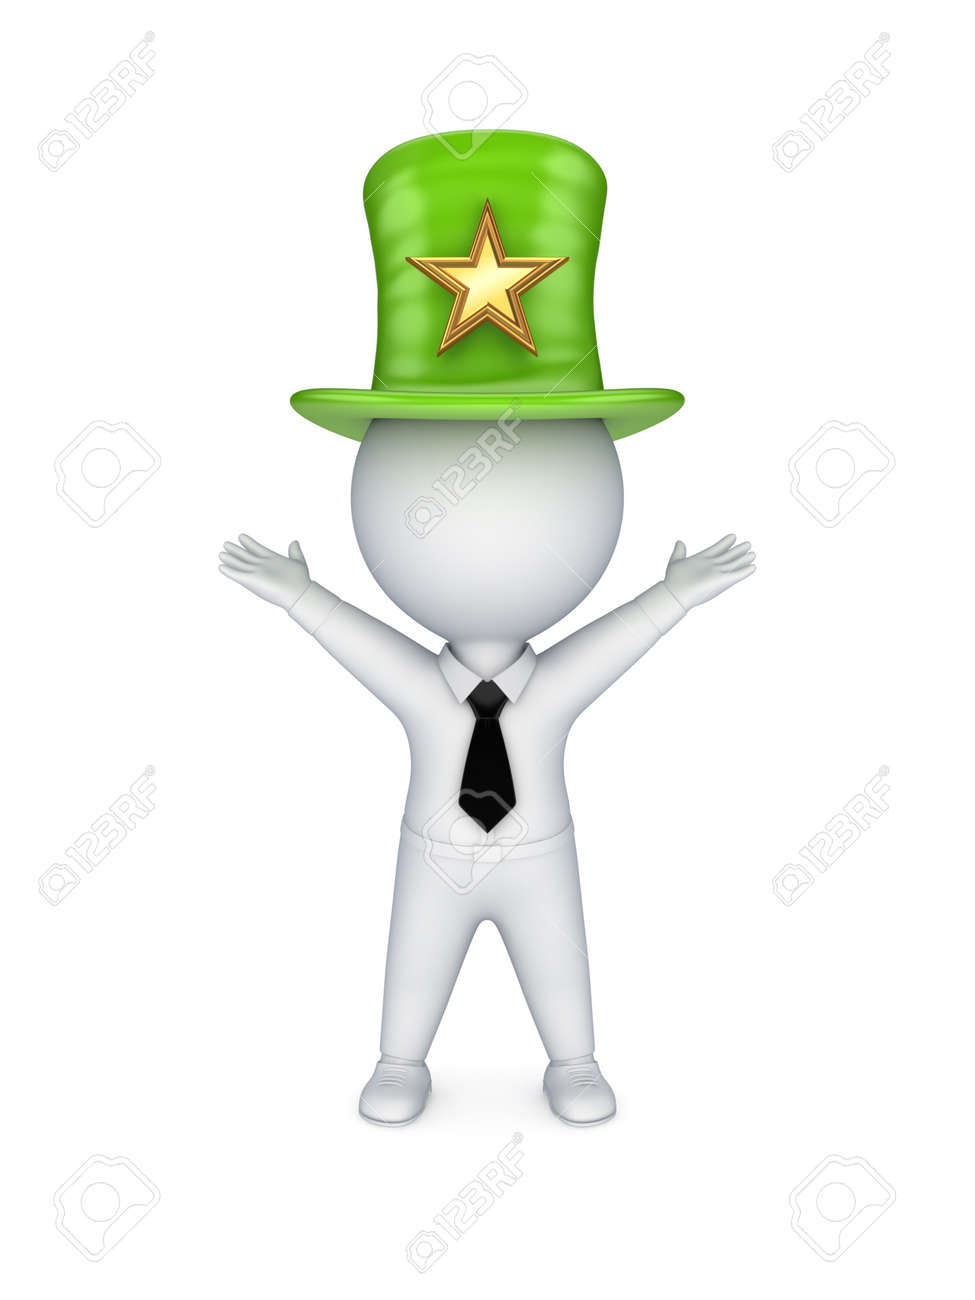 3d Small Person In Top Hat With Star Symbol Stock Photo Picture And